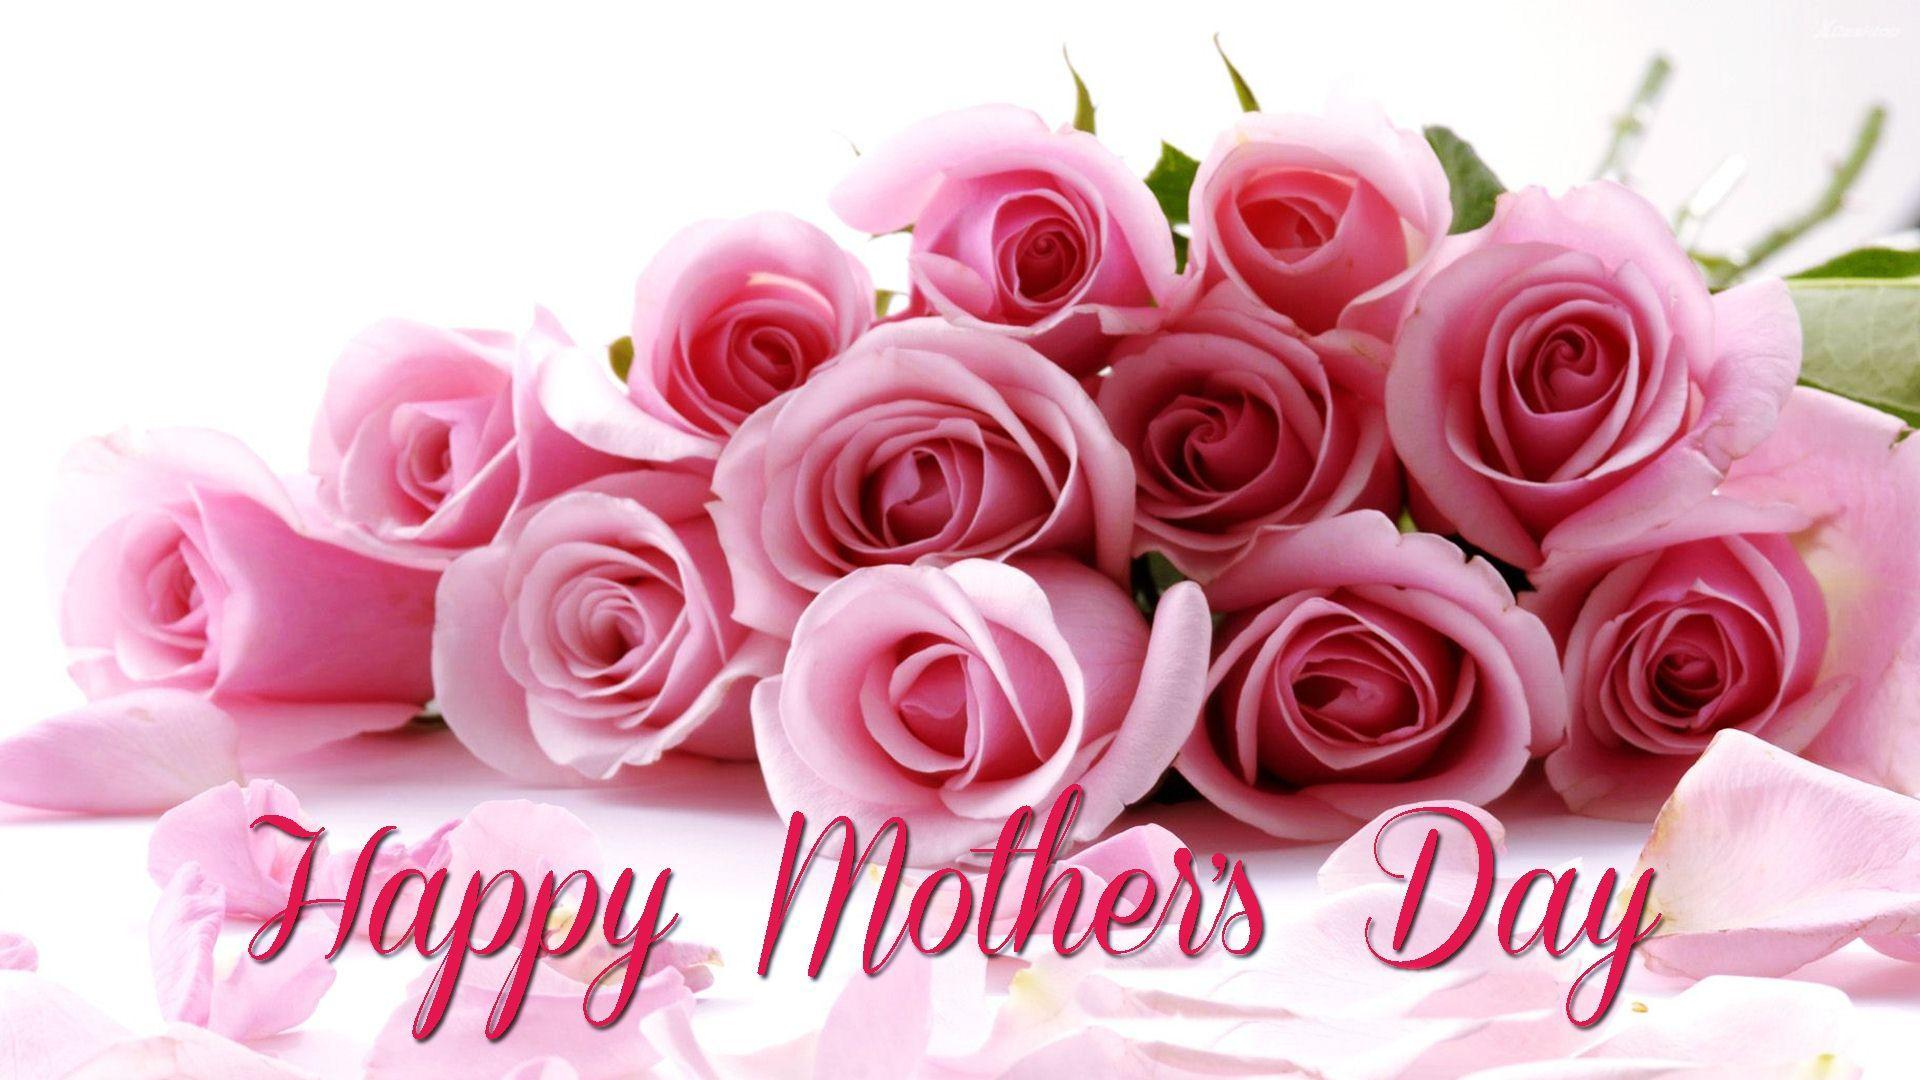 Mothers-day-wallpaper-images - wallpaper.wiki